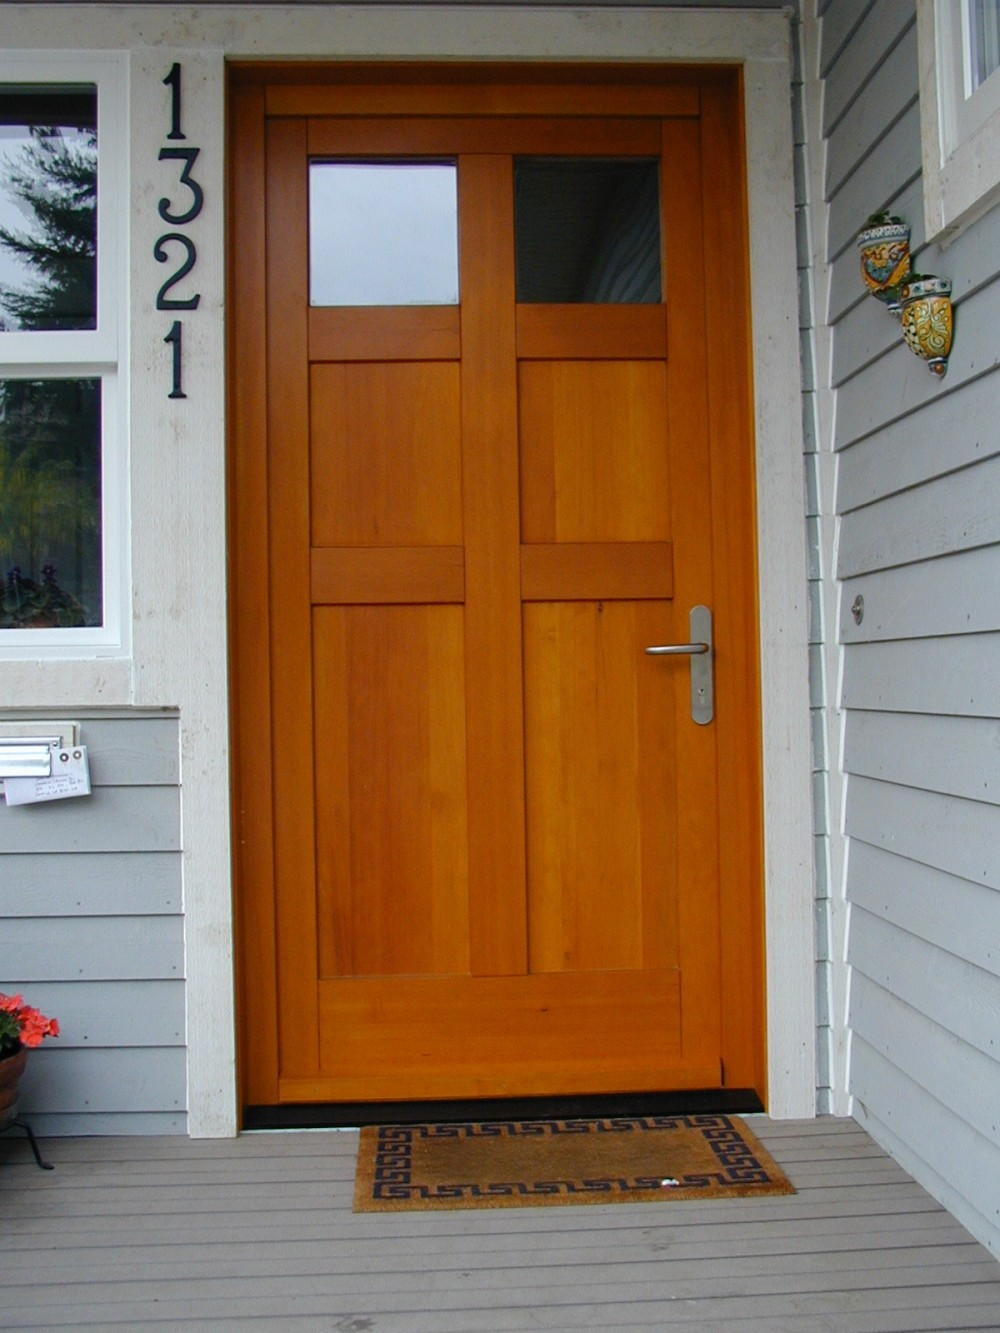 European Doors European Style Plywood Doors Design 11 028